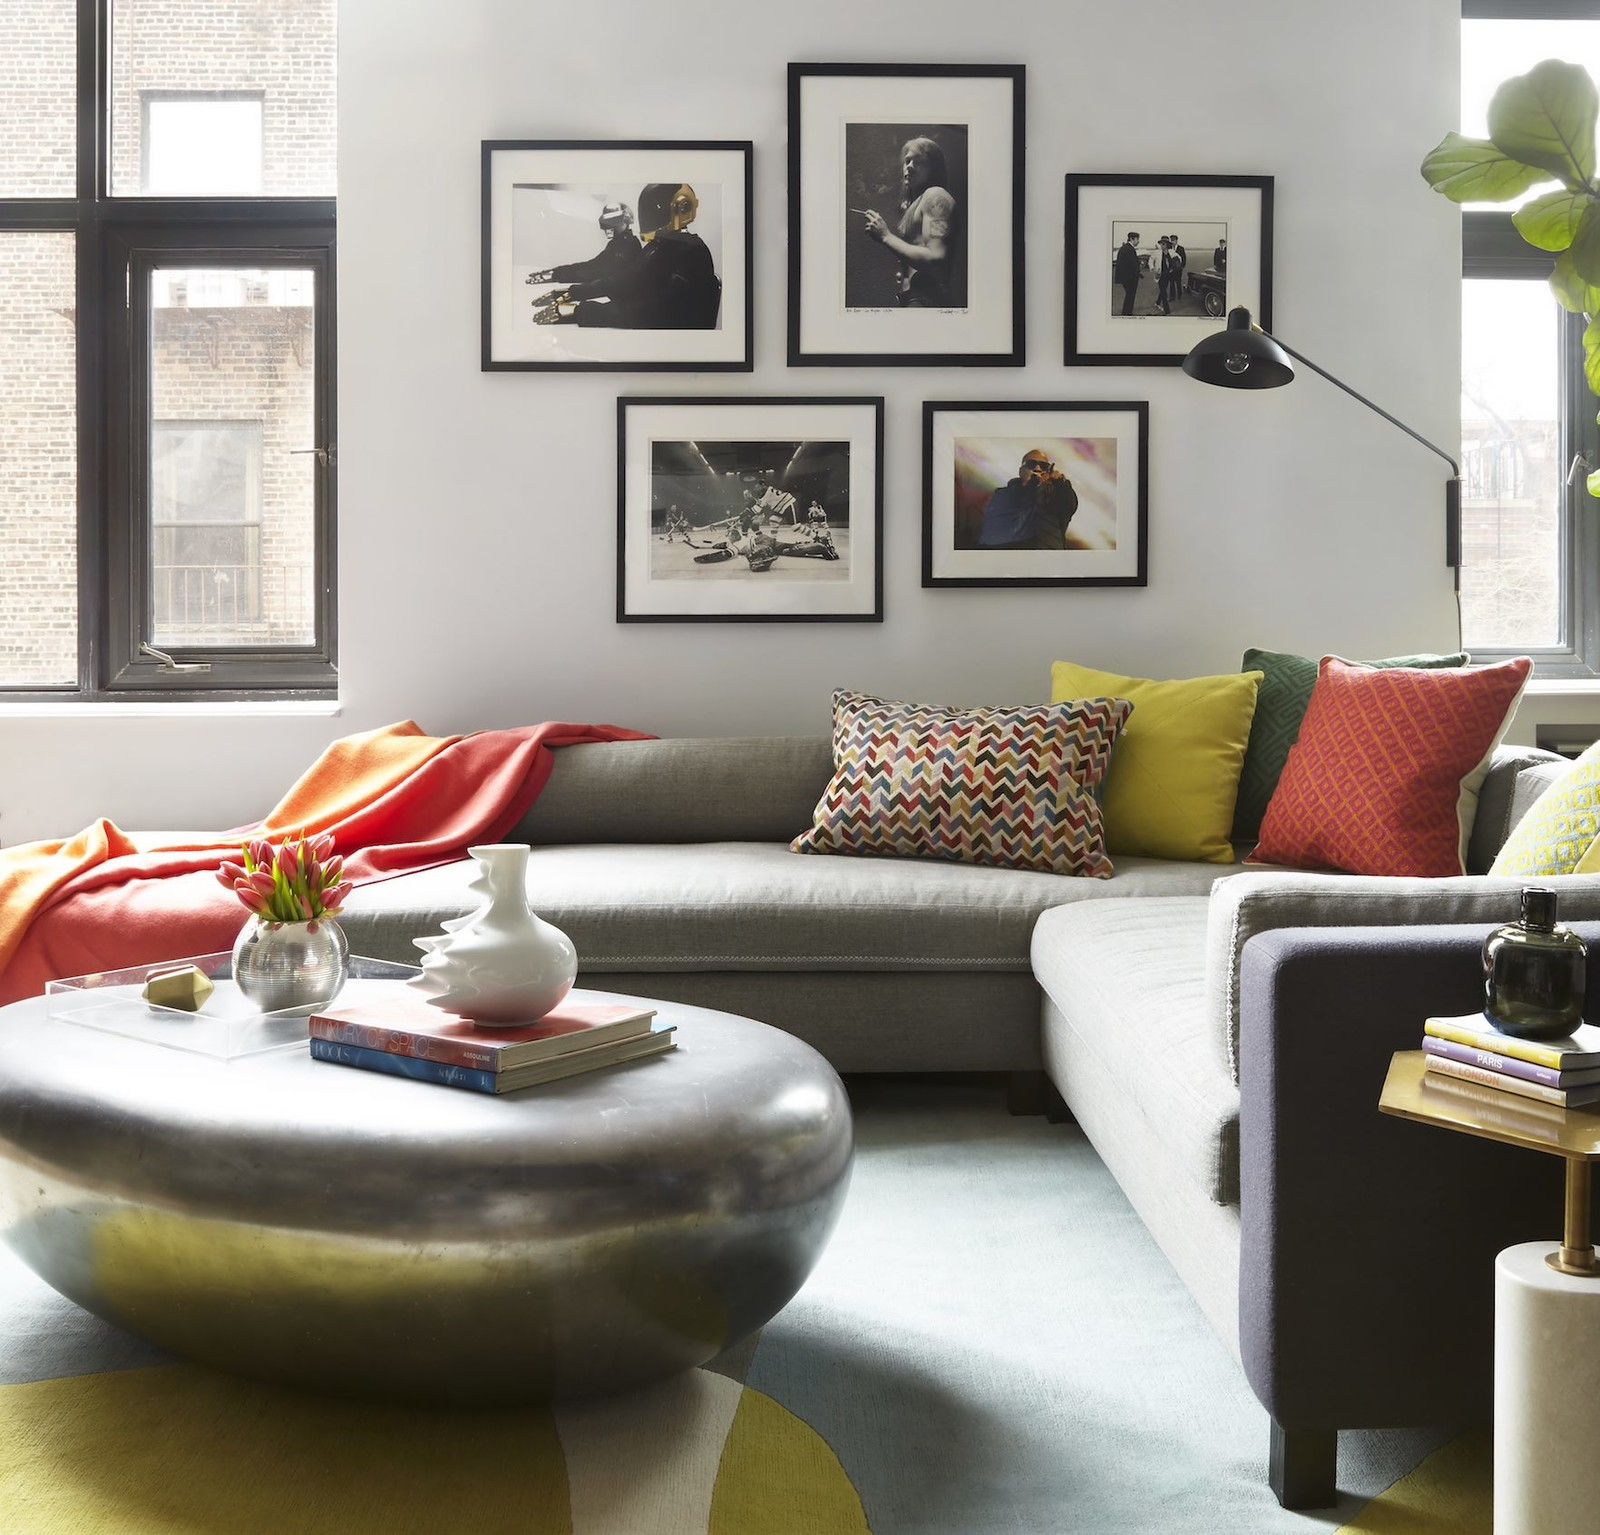 Accent pillows unexpected combinations